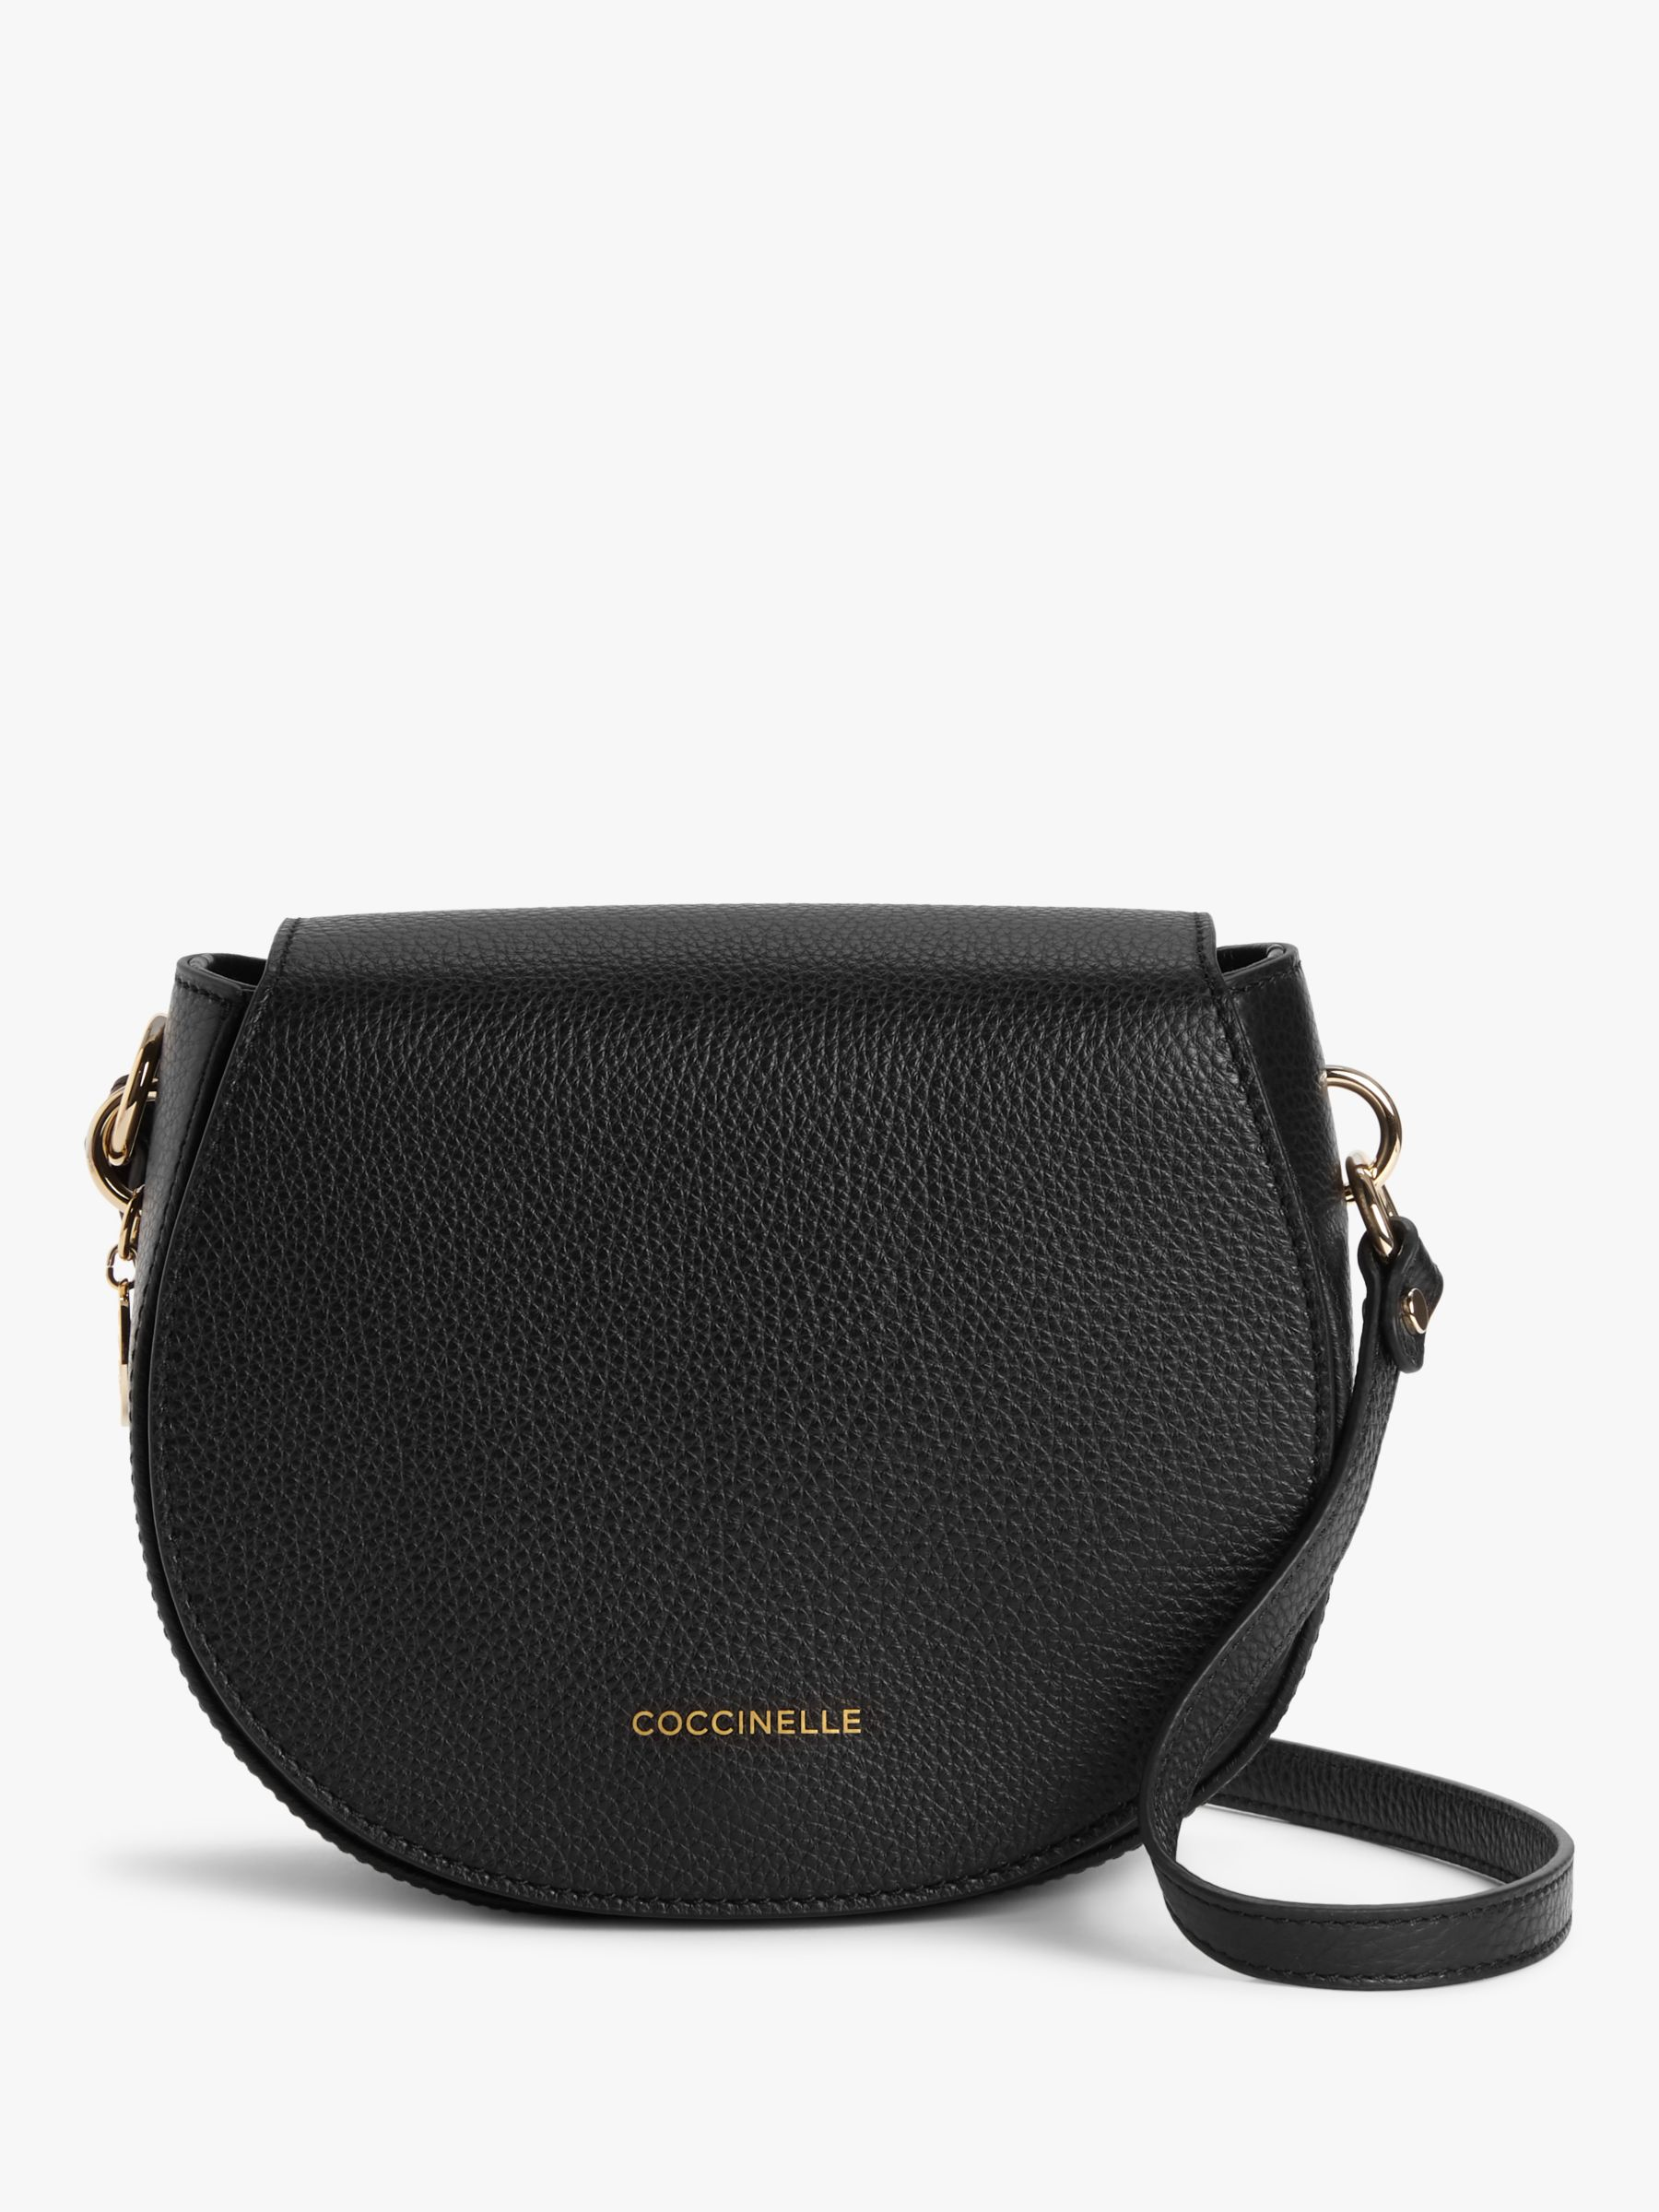 Coccinelle Coccinelle Alpha Leather Round Cross Body Bag, Black